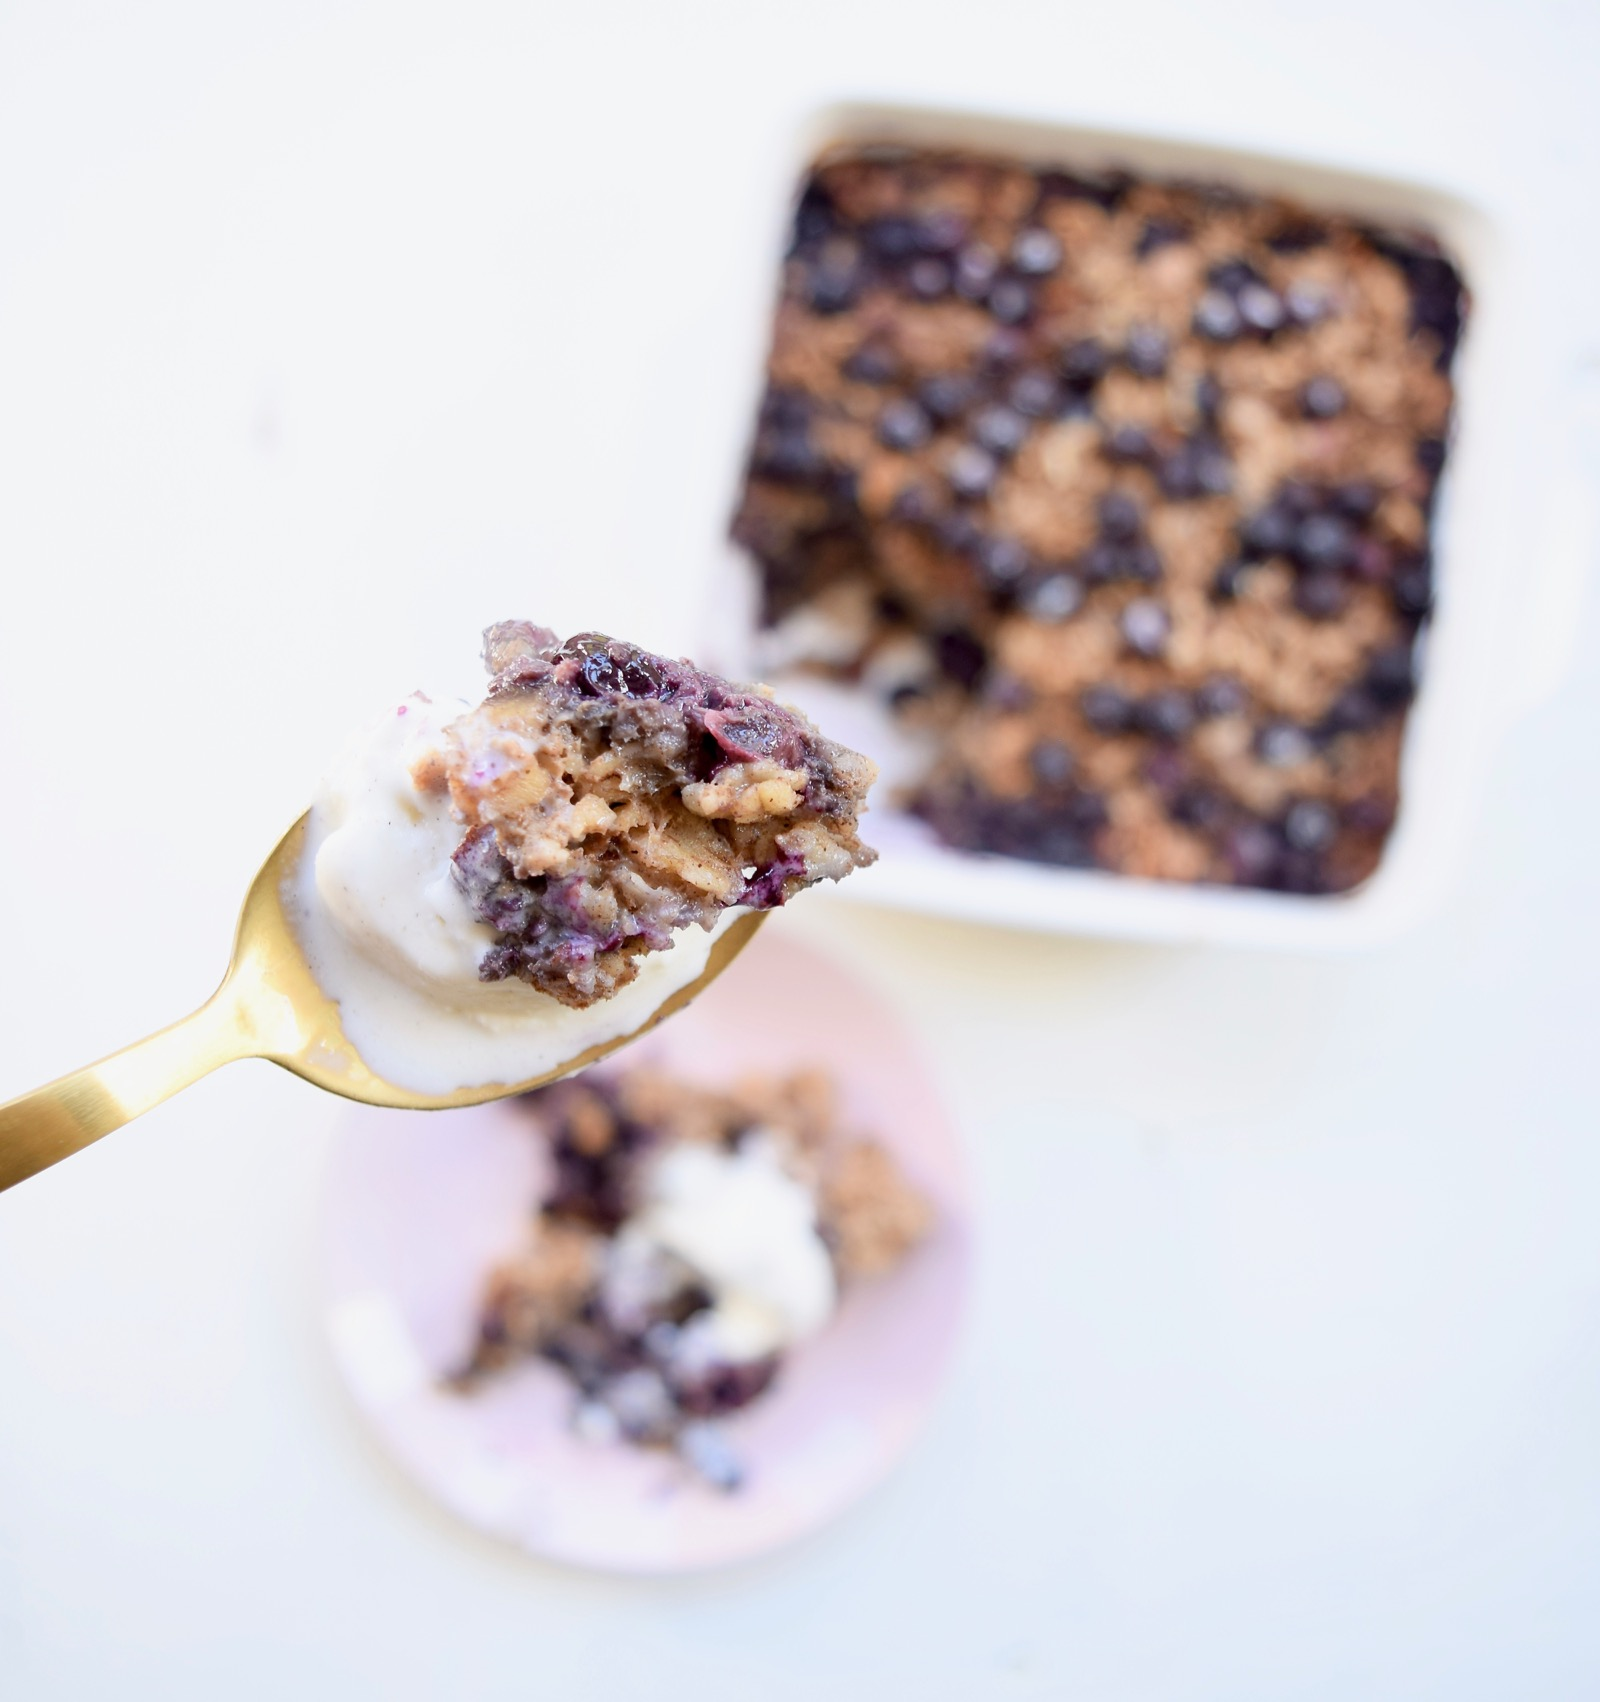 Baked Oatmeal Recipe with Blueberries